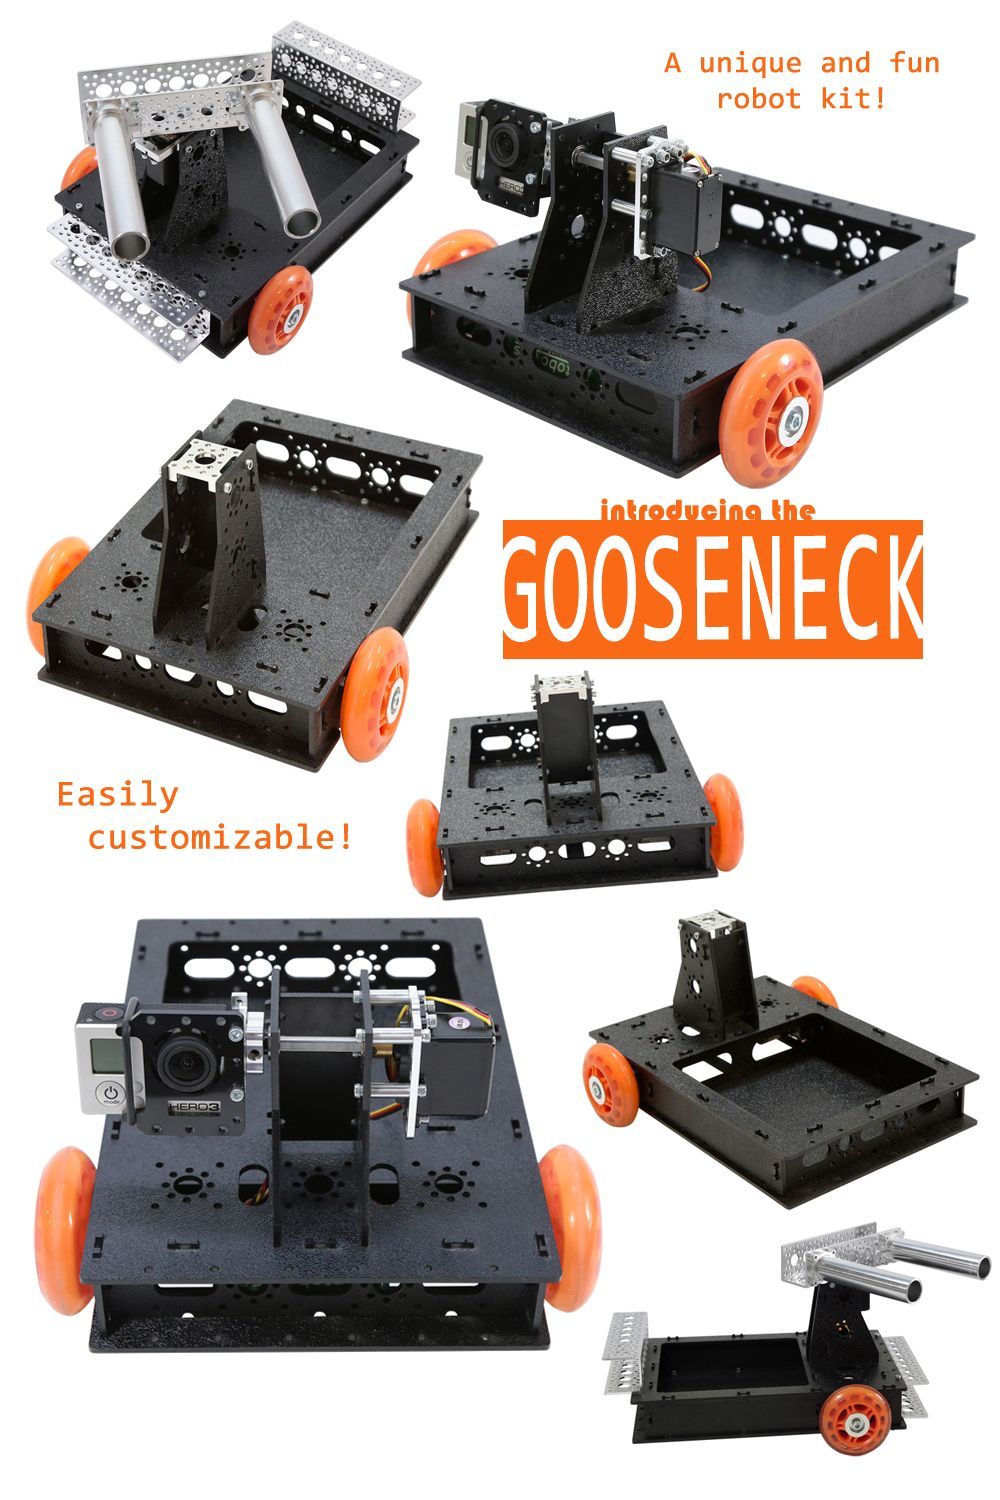 The Gooseneck™ is a great little trail-wheel robot kit that glides ...